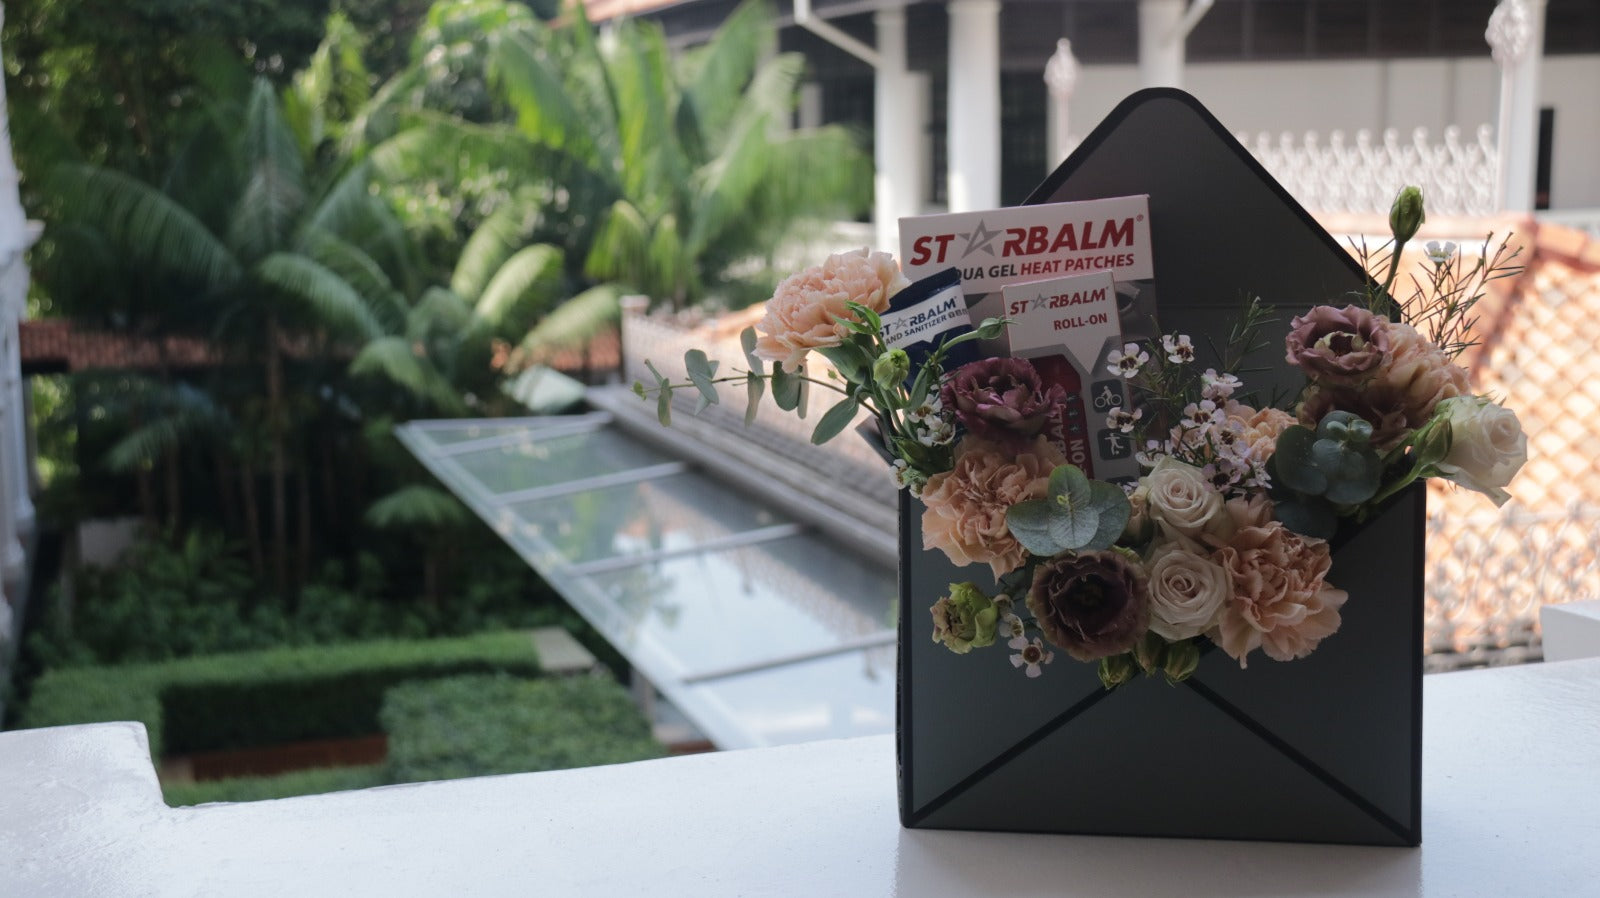 MOM, We Care for You (Floral Care Pack x Starbalm)